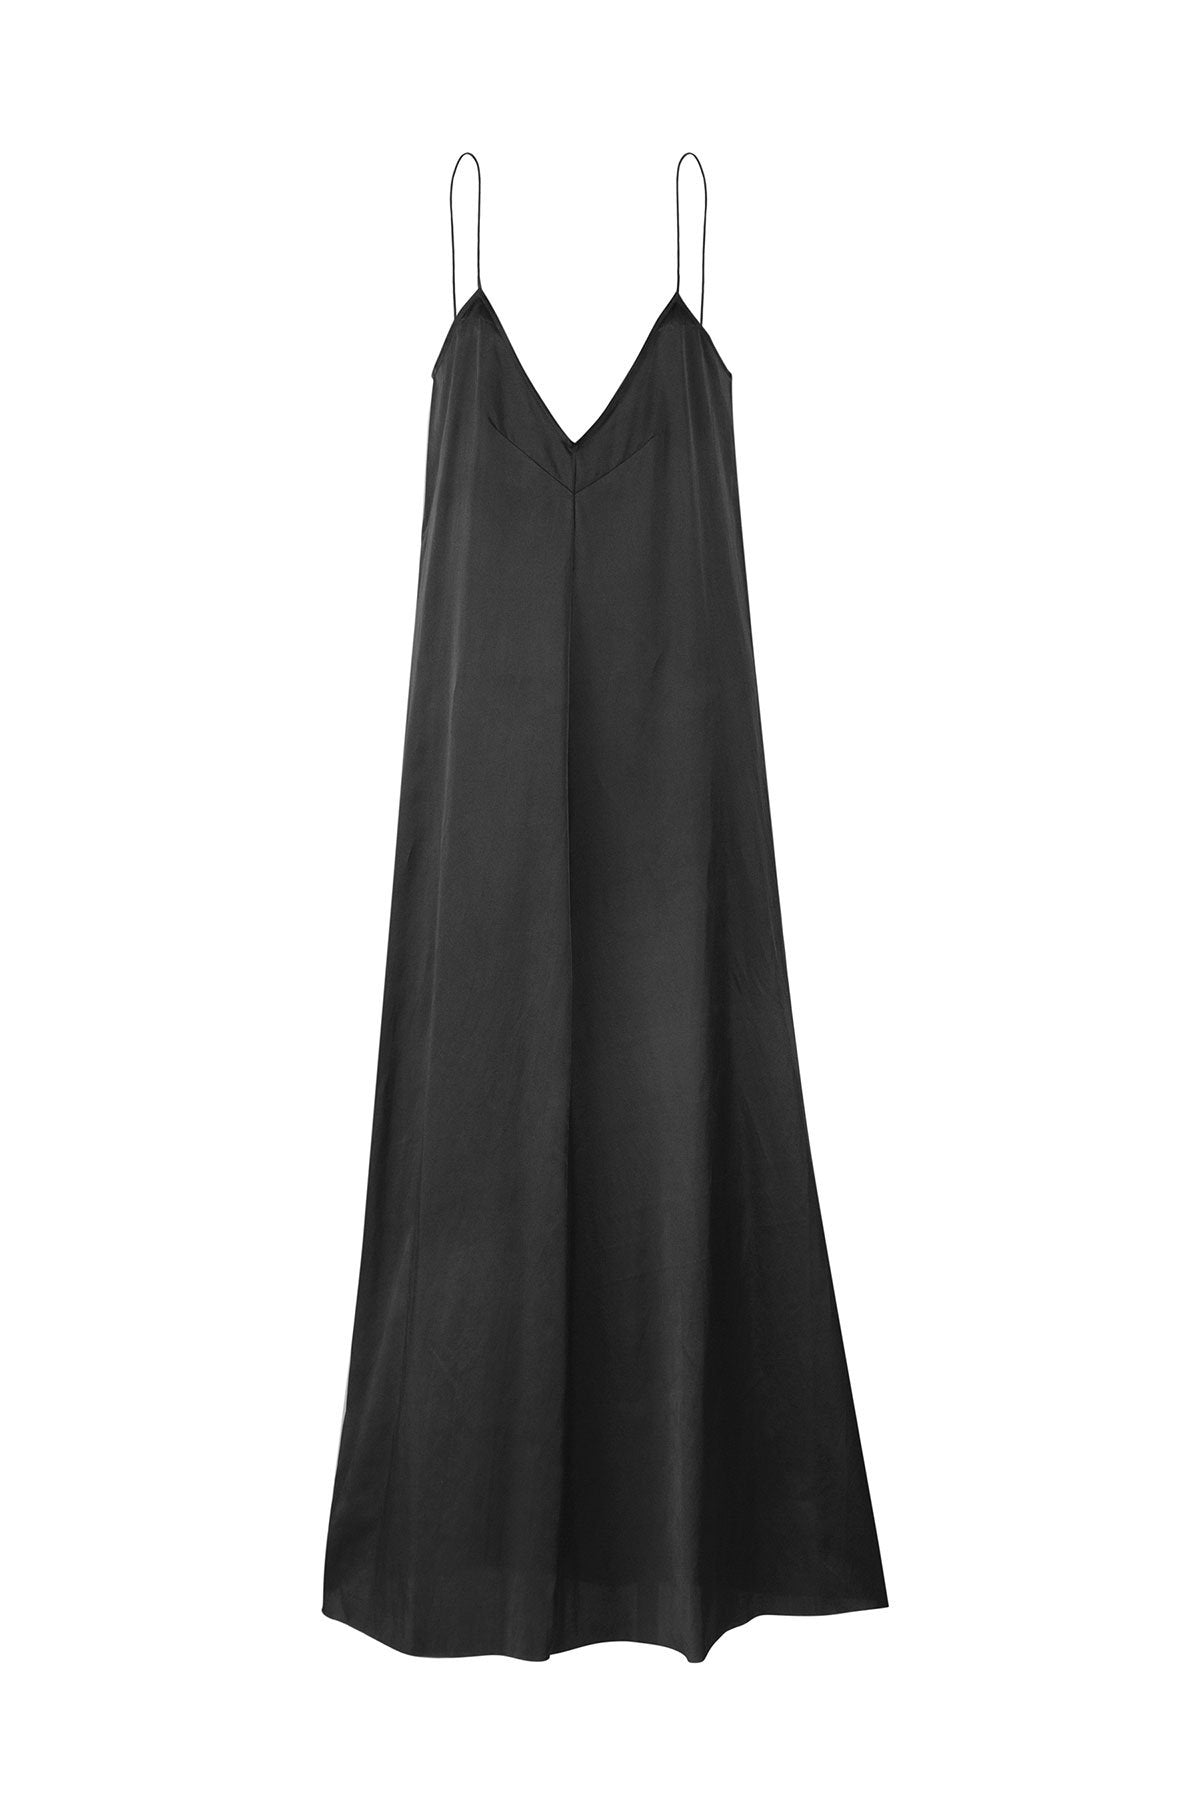 The Pablo Full Length Dress - Ebony